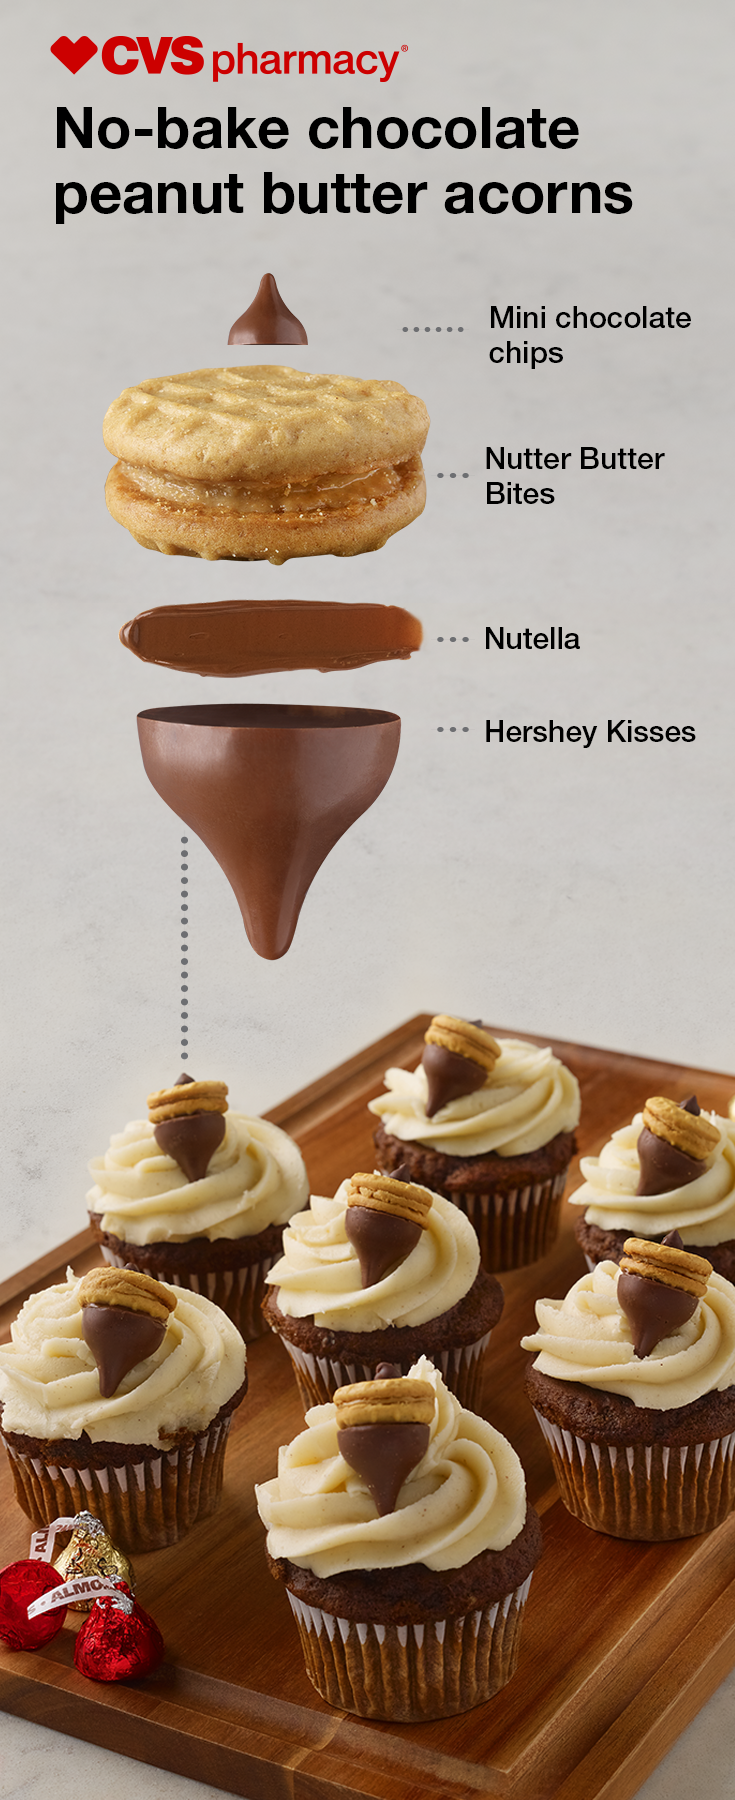 Add Some Fall Flair To Otherwise Ordinary Cupcakes By Topping Them